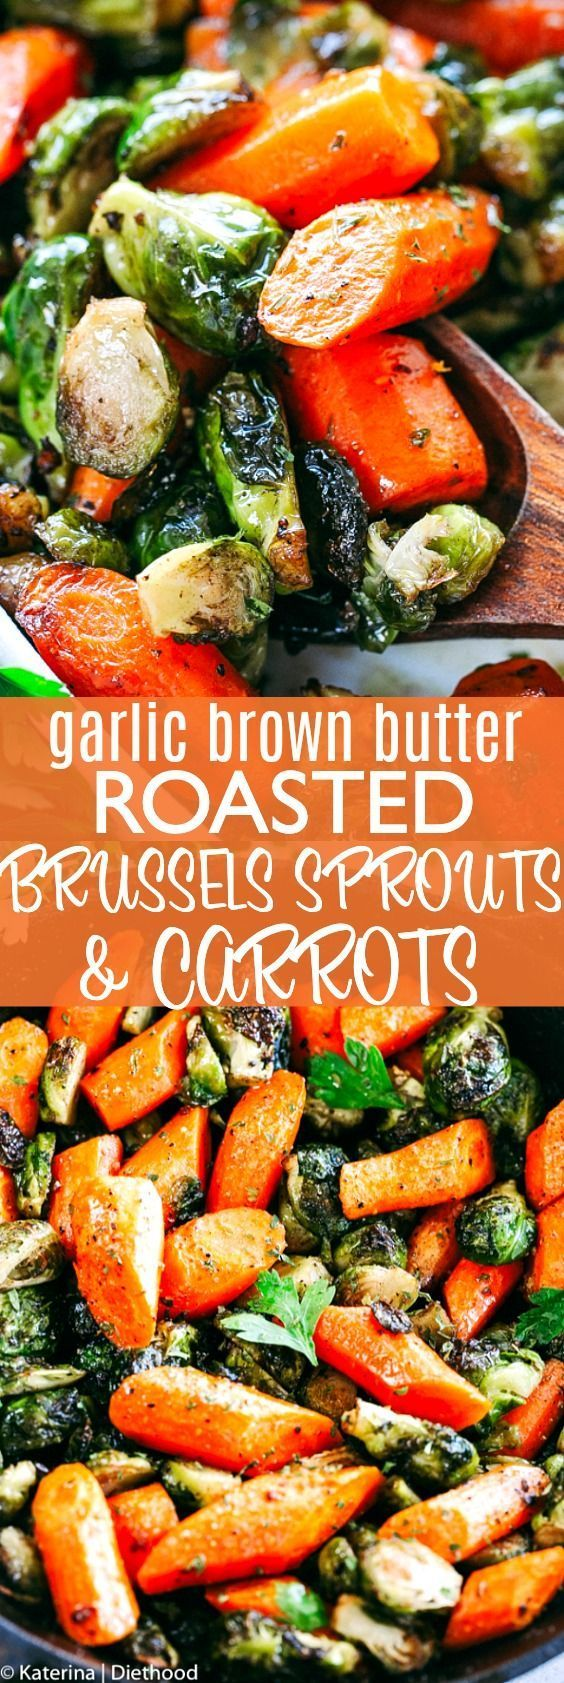 Garlic Brown Butter Roasted Brussels Sprouts and Carrots - Diethood